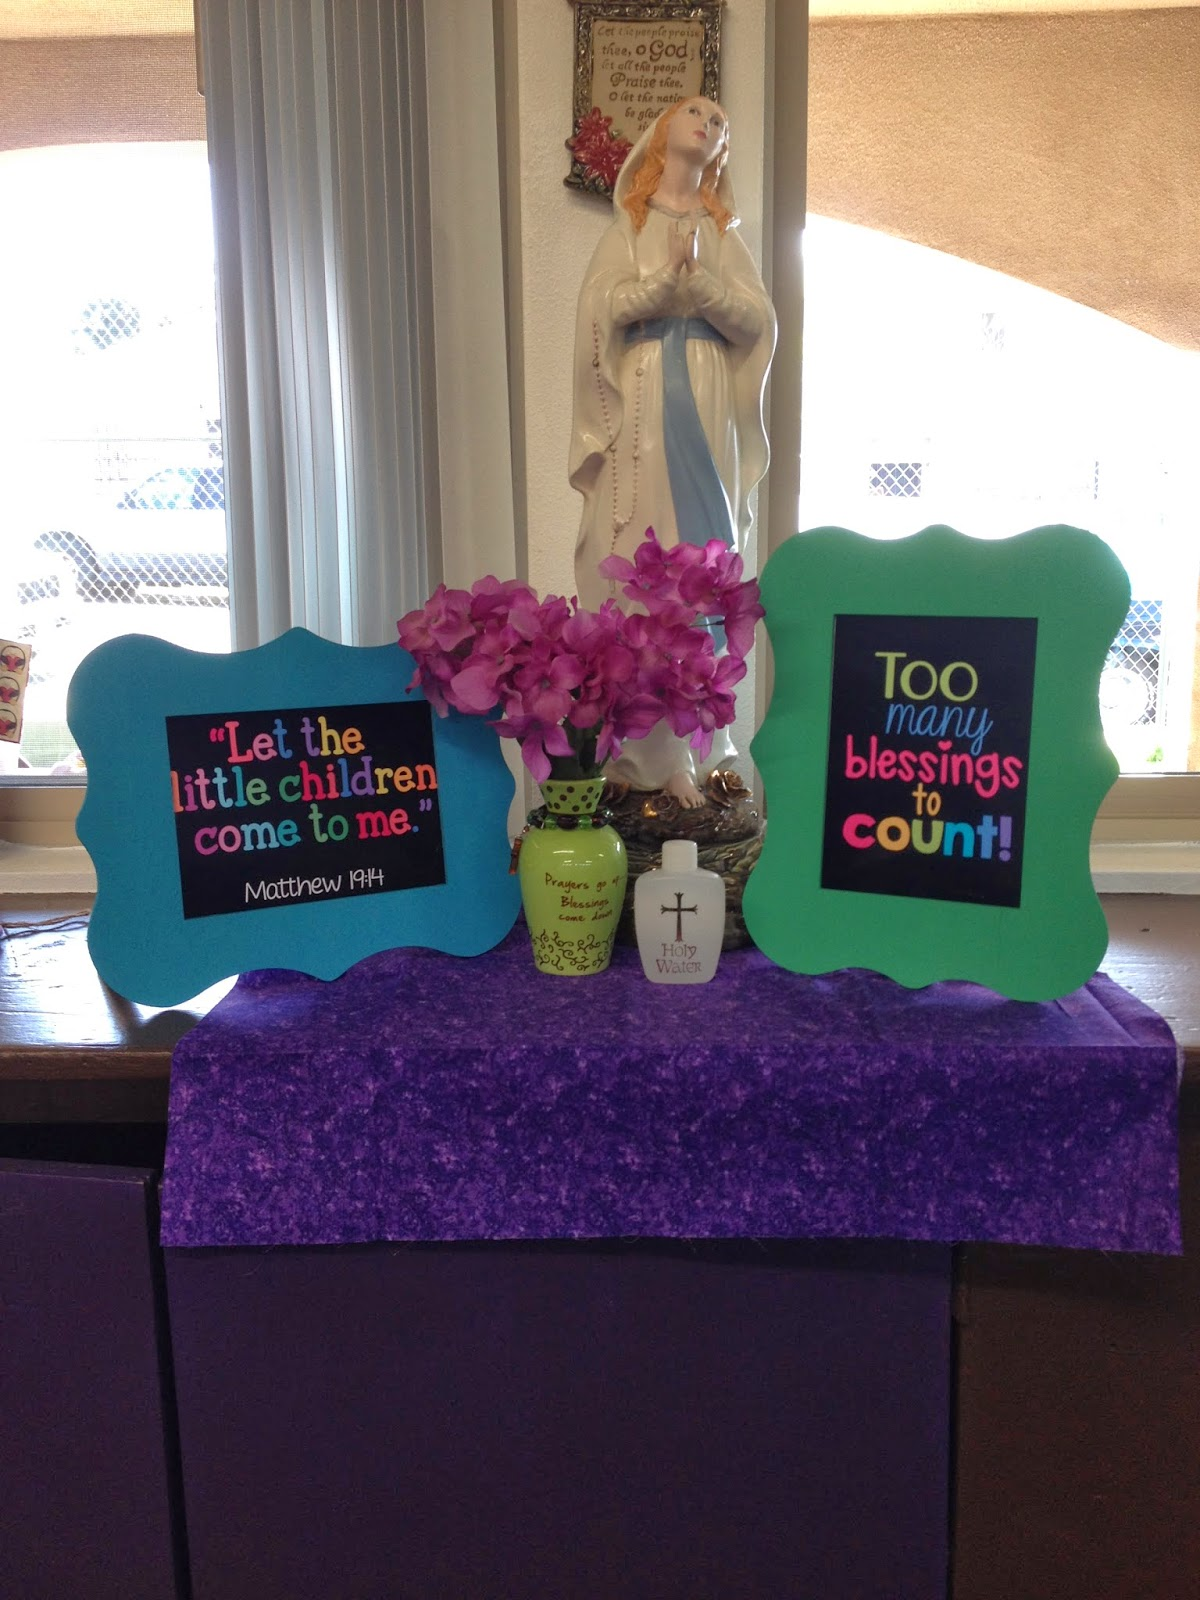 Sprucing up the prayer corner mrs b 39 s beehive - Home daycare ideas for decorating ideas ...